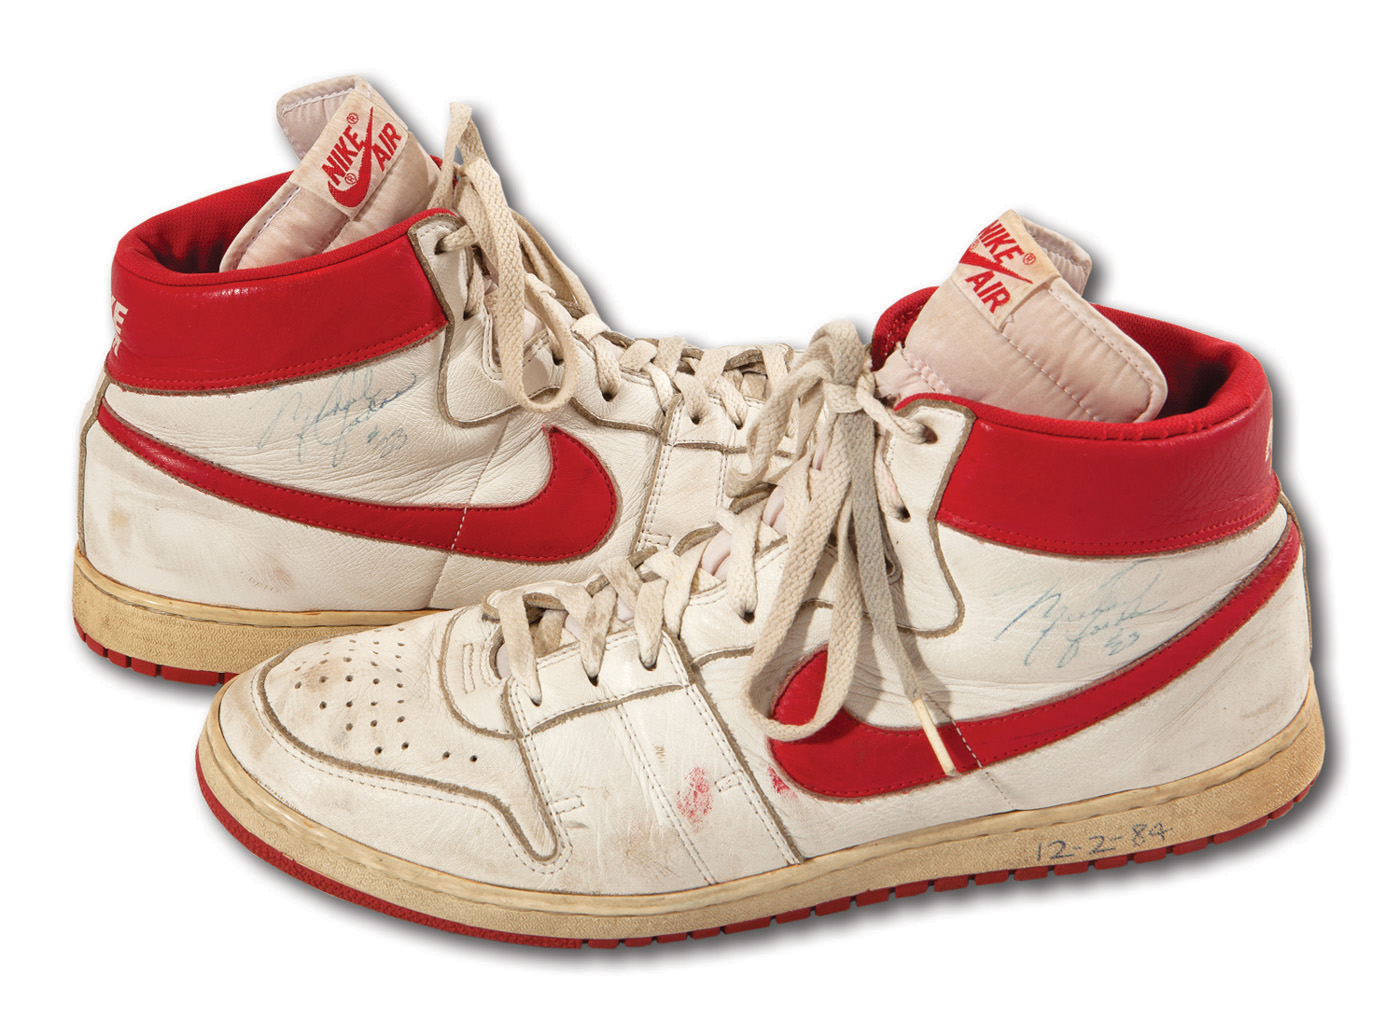 c066840445da6 MONUMENTAL MICHAEL JORDAN SIGNED PAIR OF NIKE AIR SHIP GAME WORN (ROOKIE  SEASON) SHOES. Touch to zoom